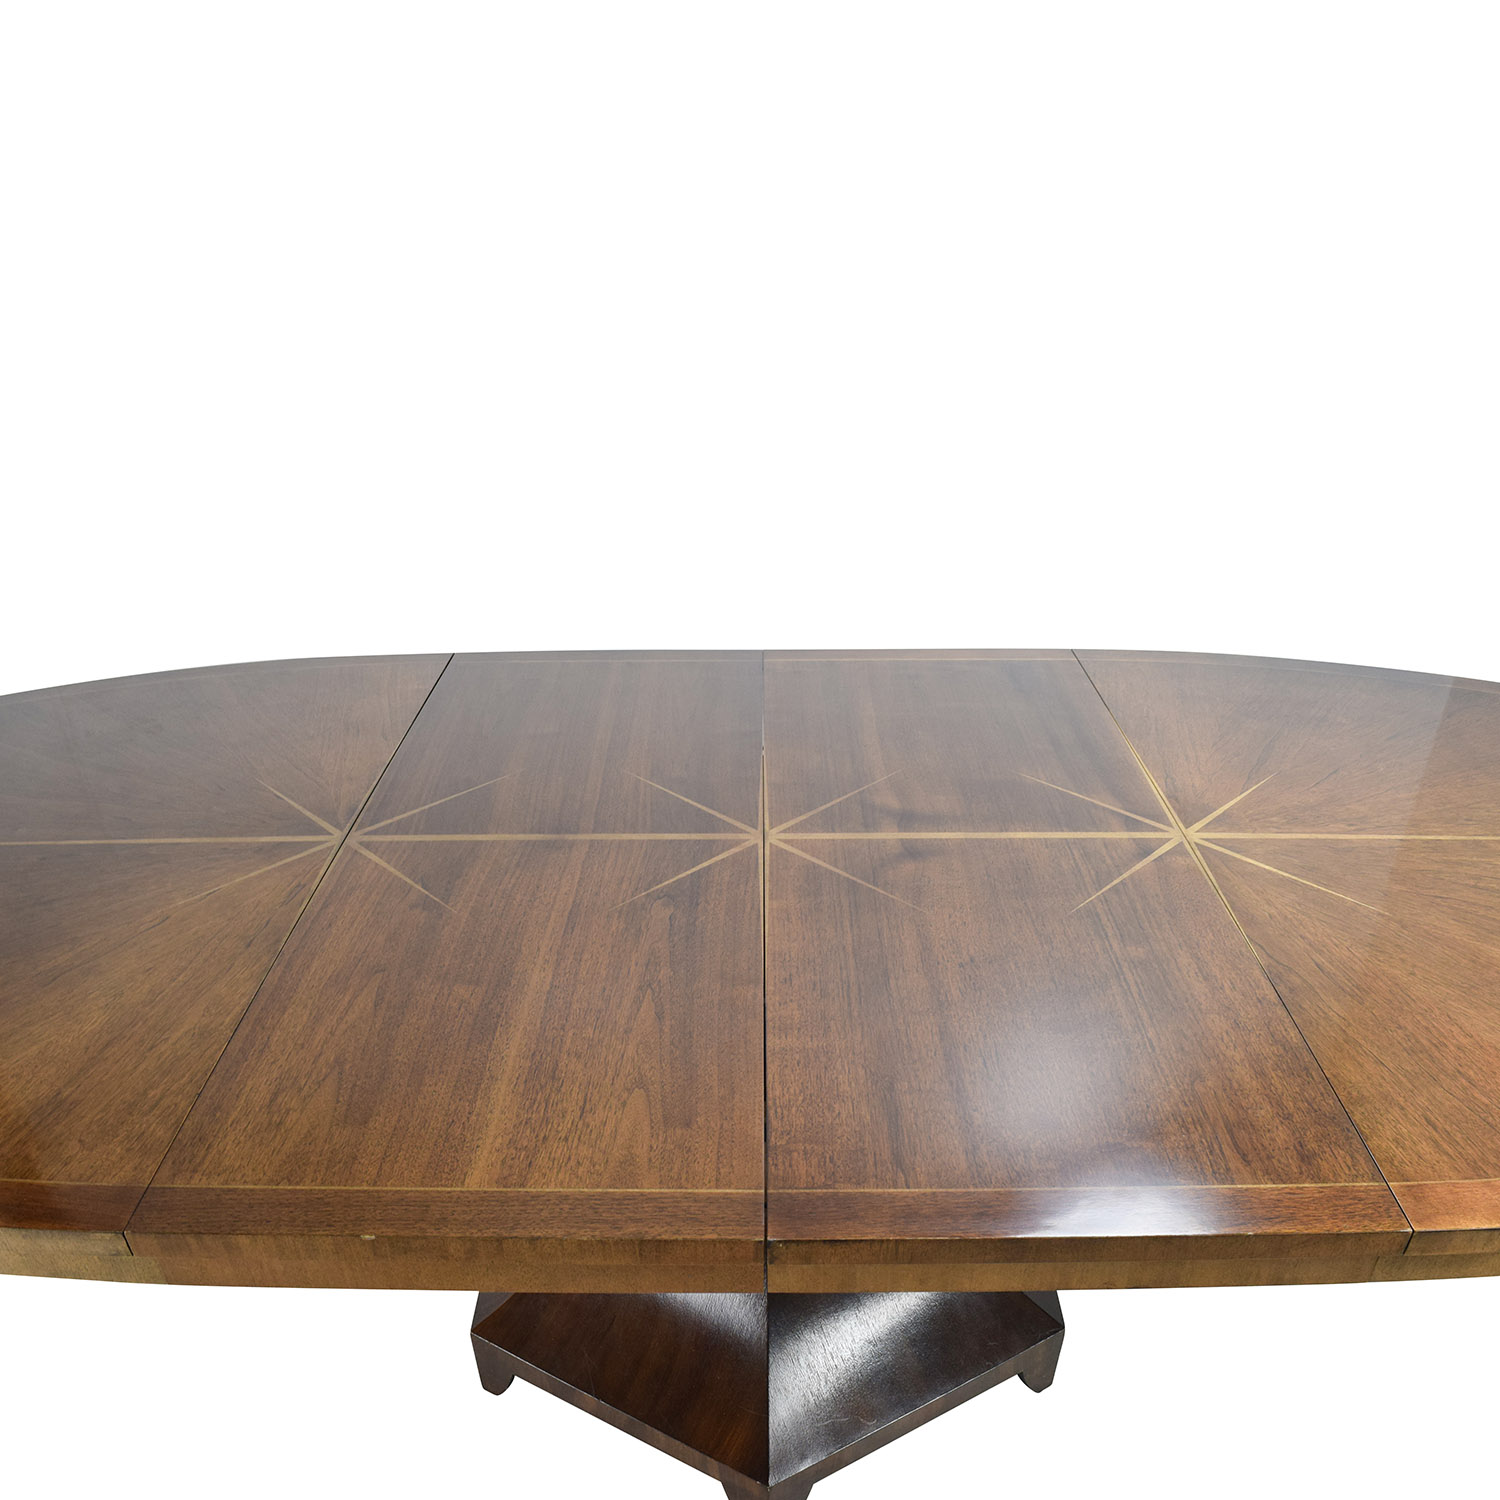 67% OFF Henredon Henredon Celestial Oval Table Designed by